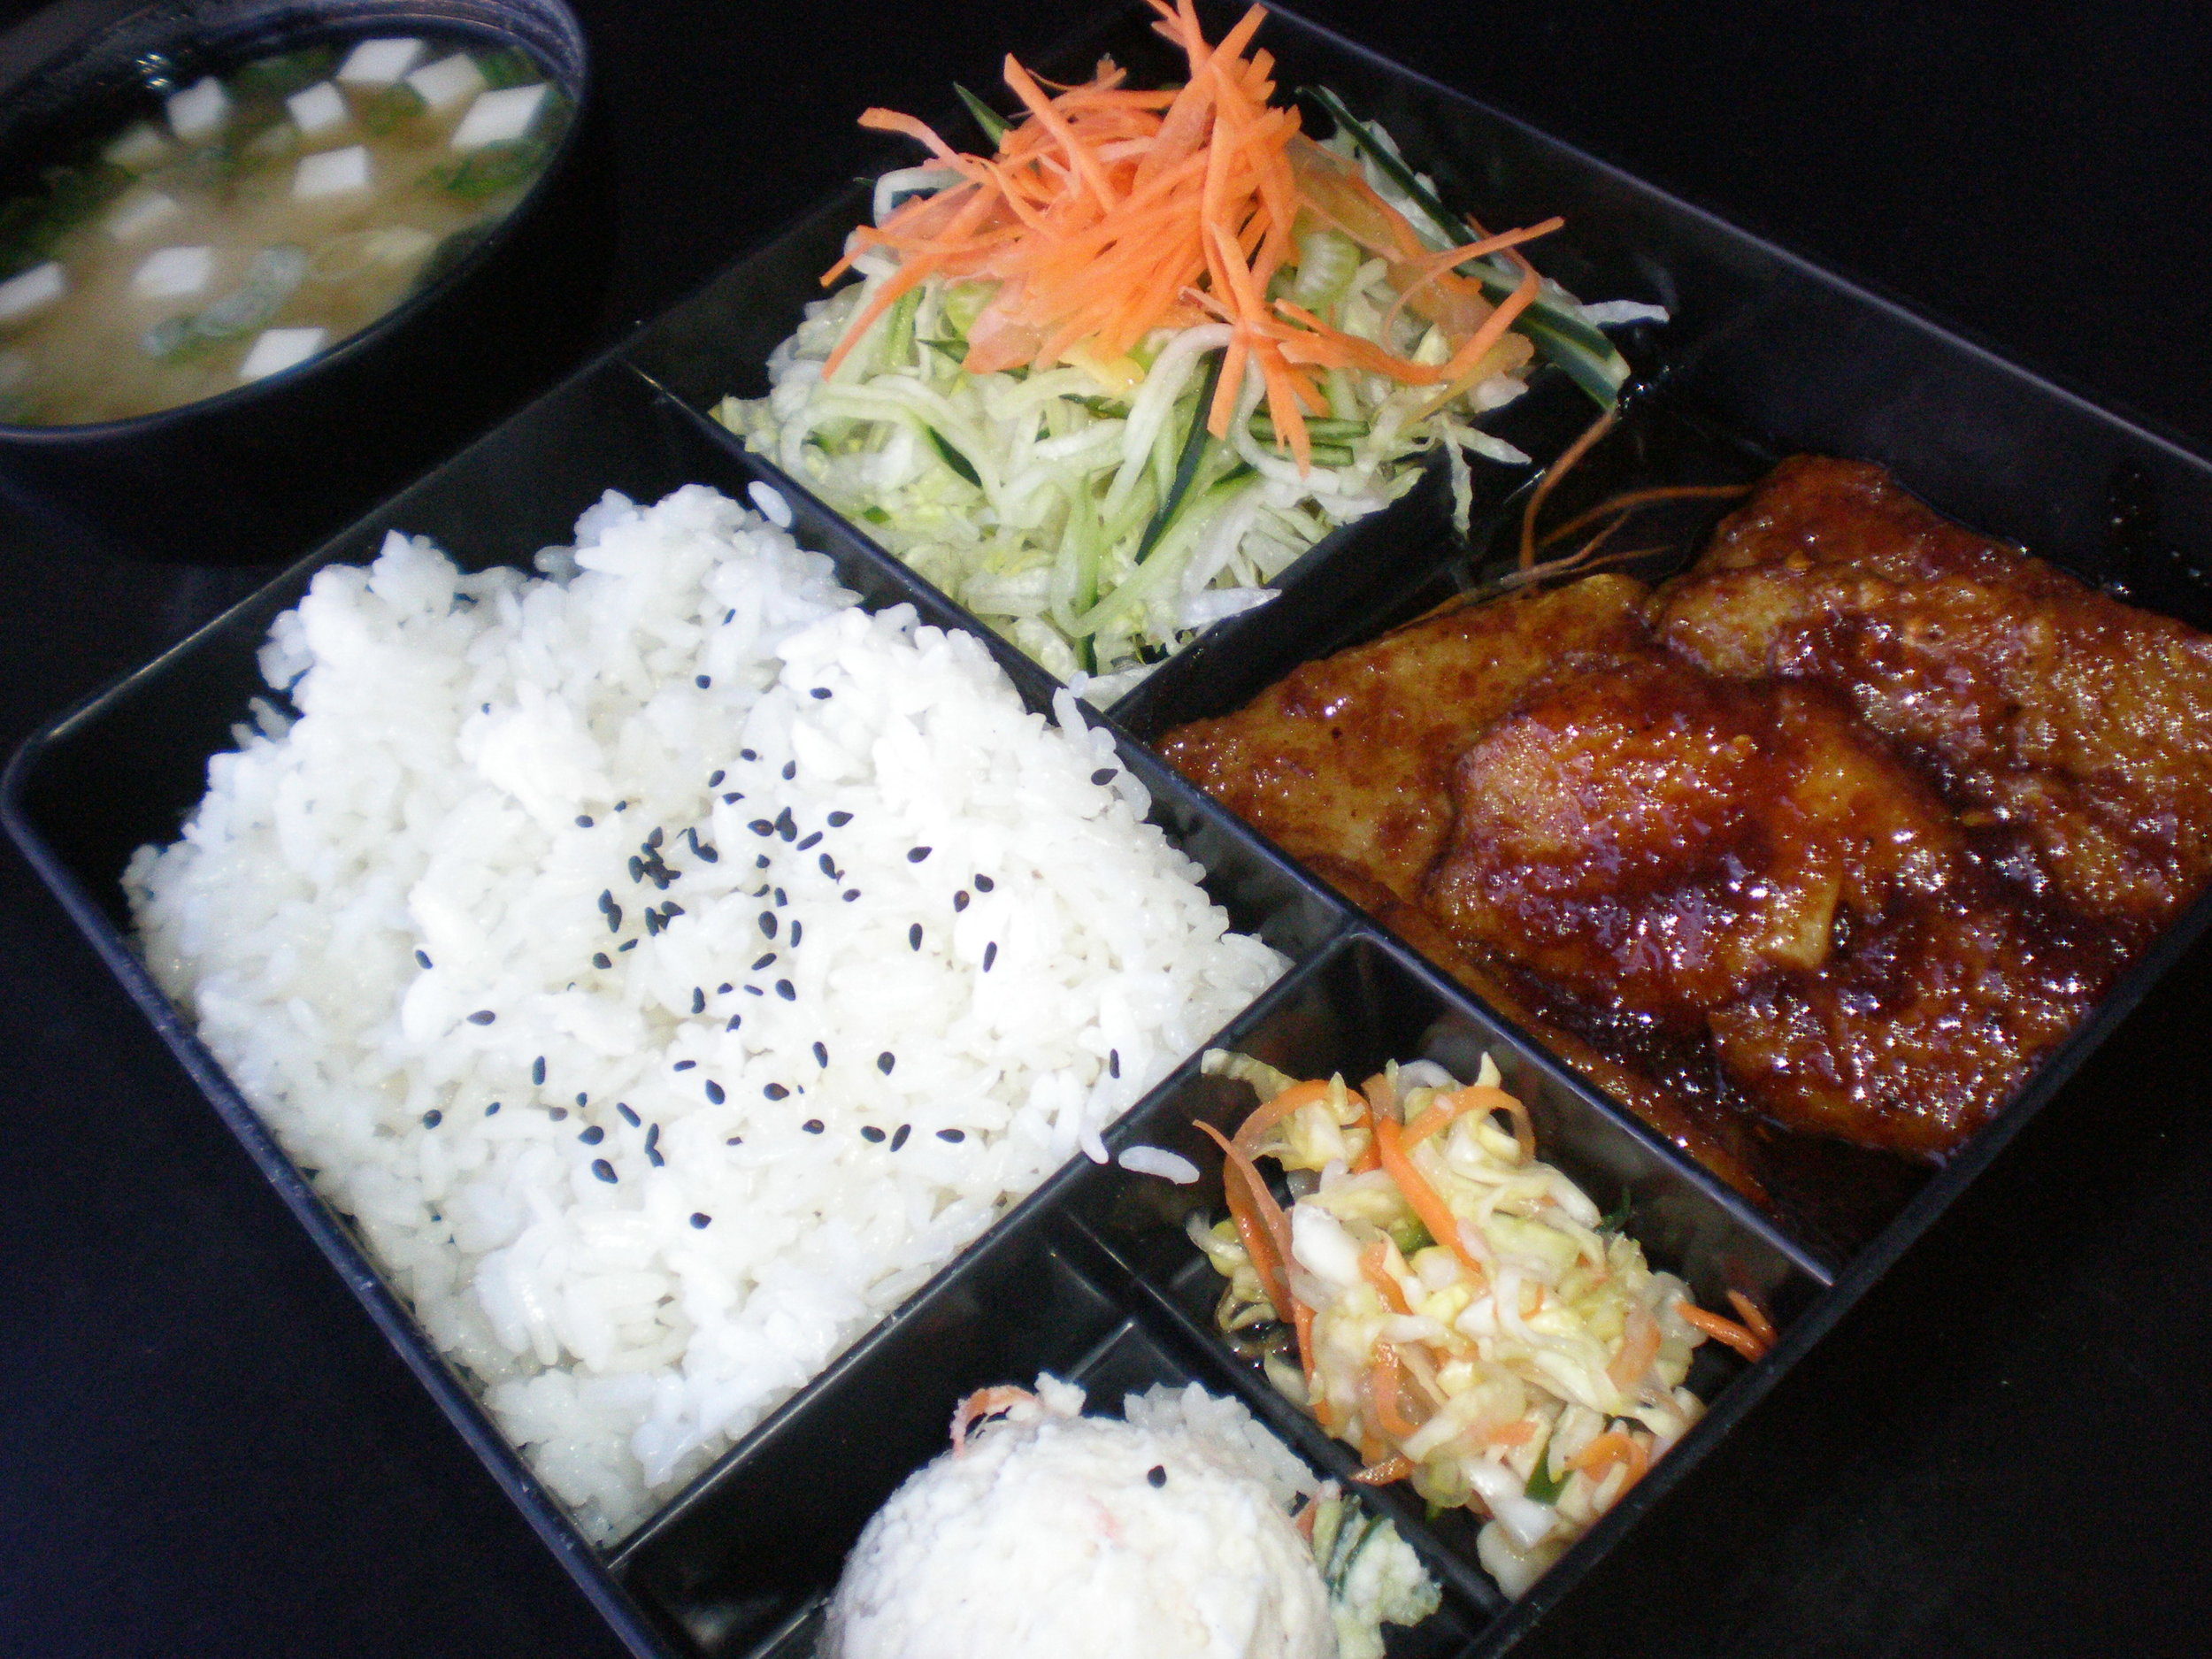 Salmon Sashimi with Salad, Miso Soup and Rice